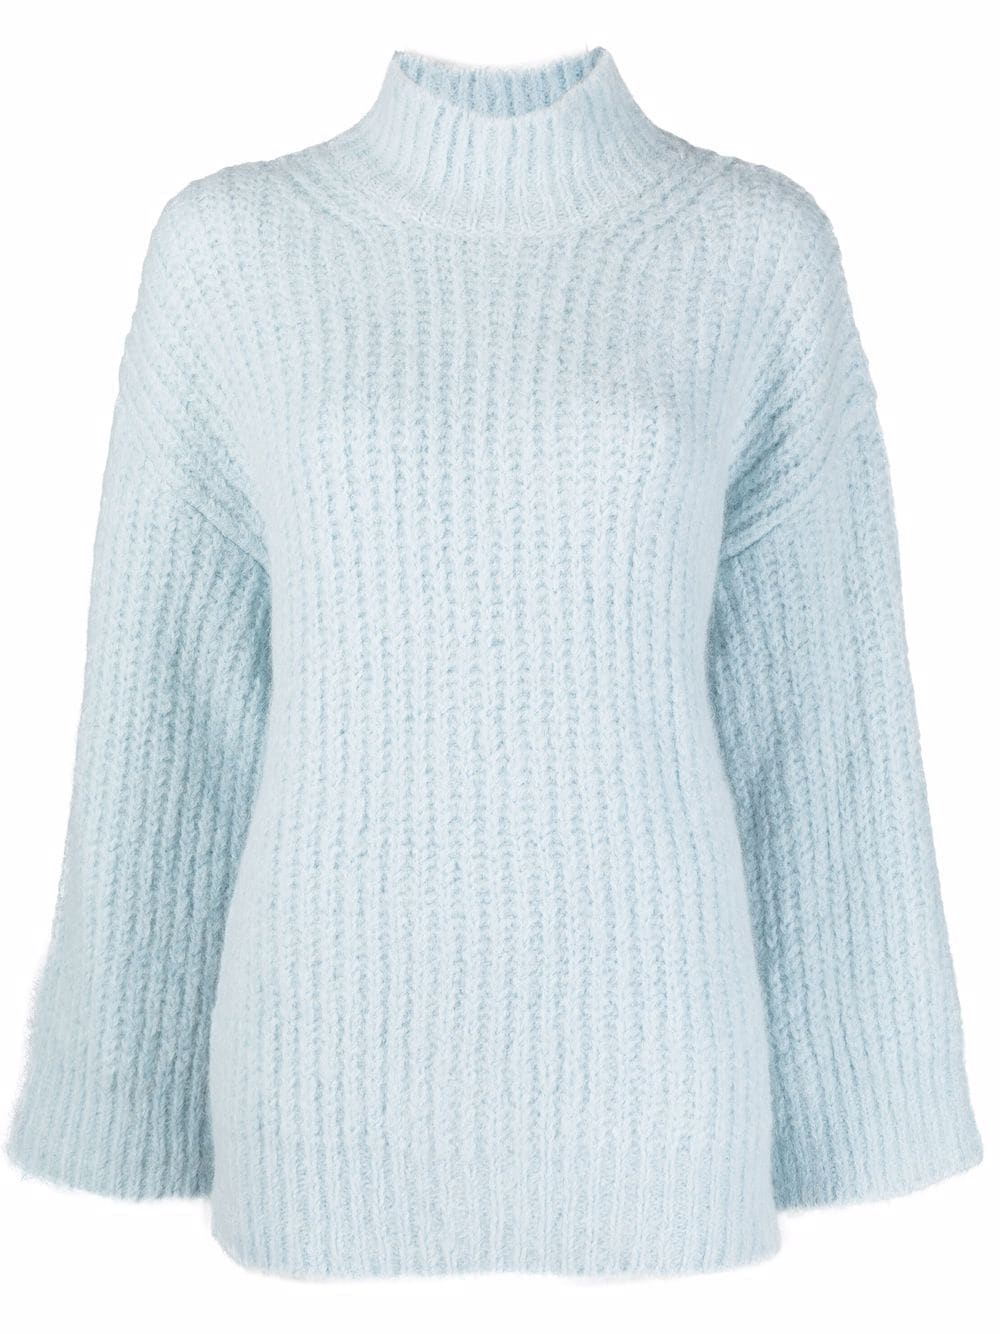 <p class='small-title'>A.P.C.</p>Sweater